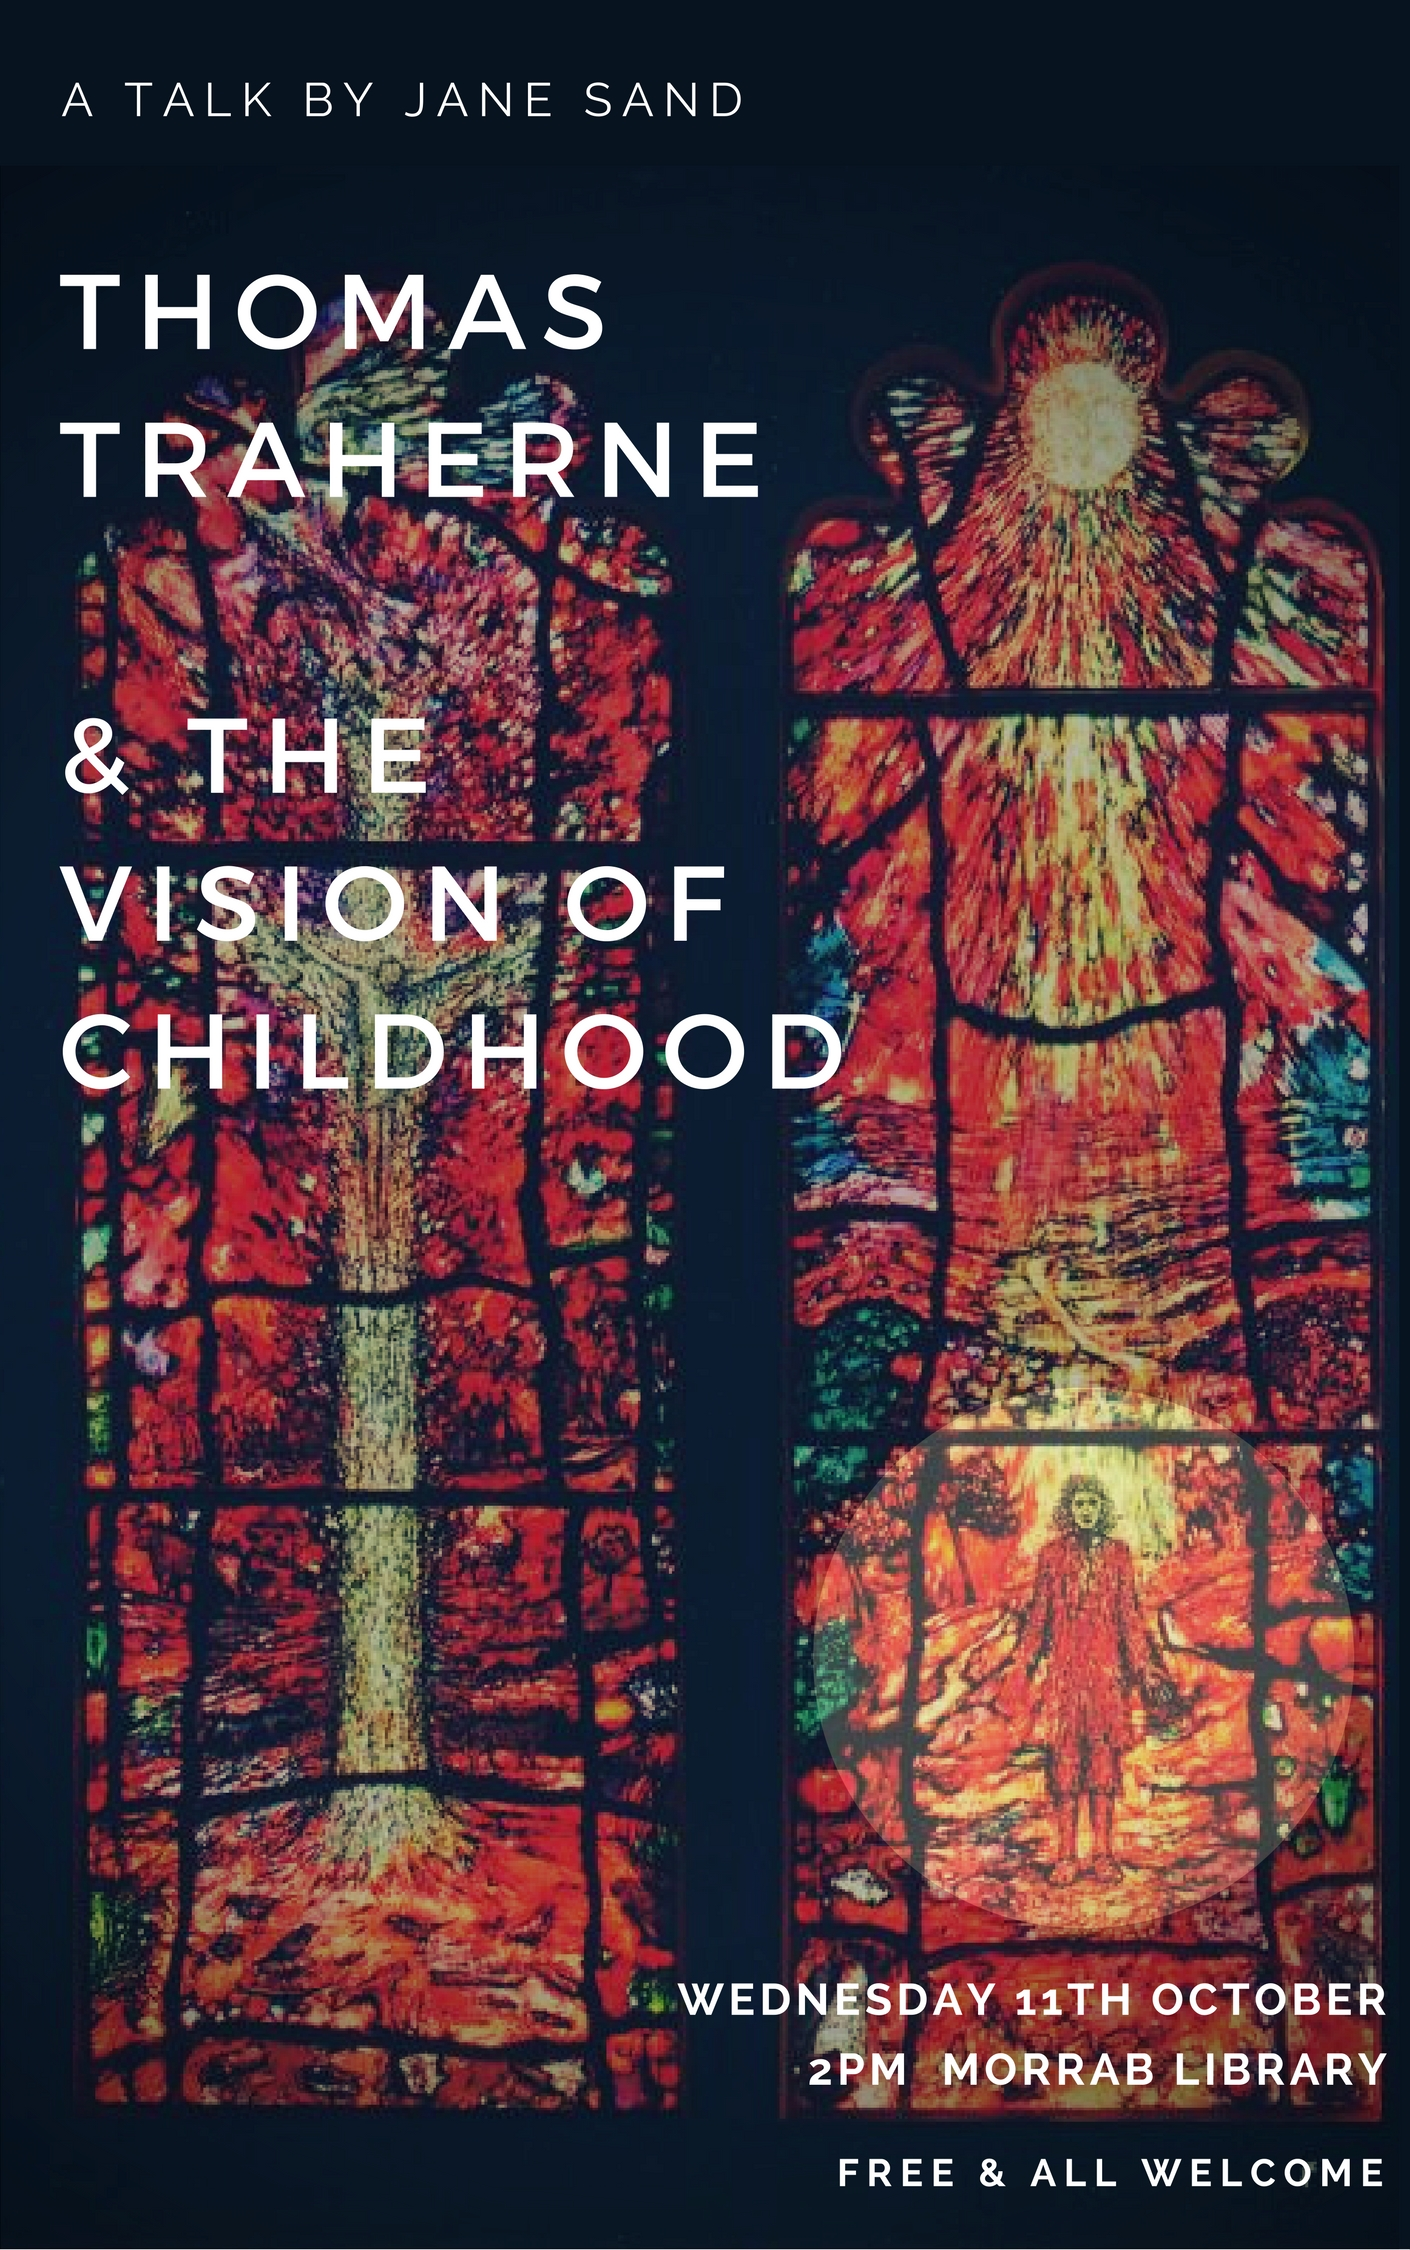 Copy of Thomas Traherne